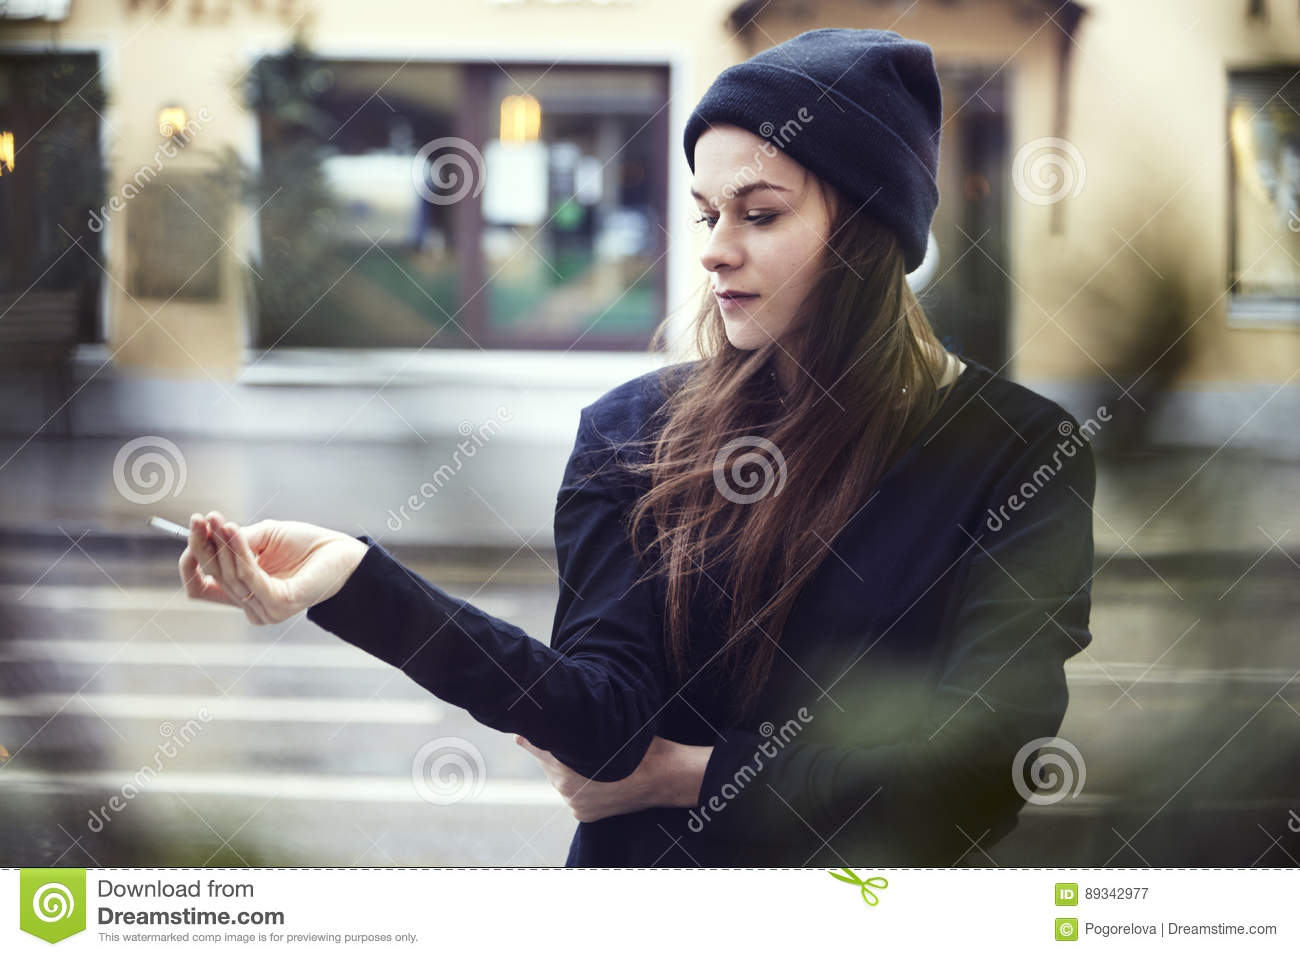 Beautiful lonely woman smoke outside at the street, cold weather in a city.